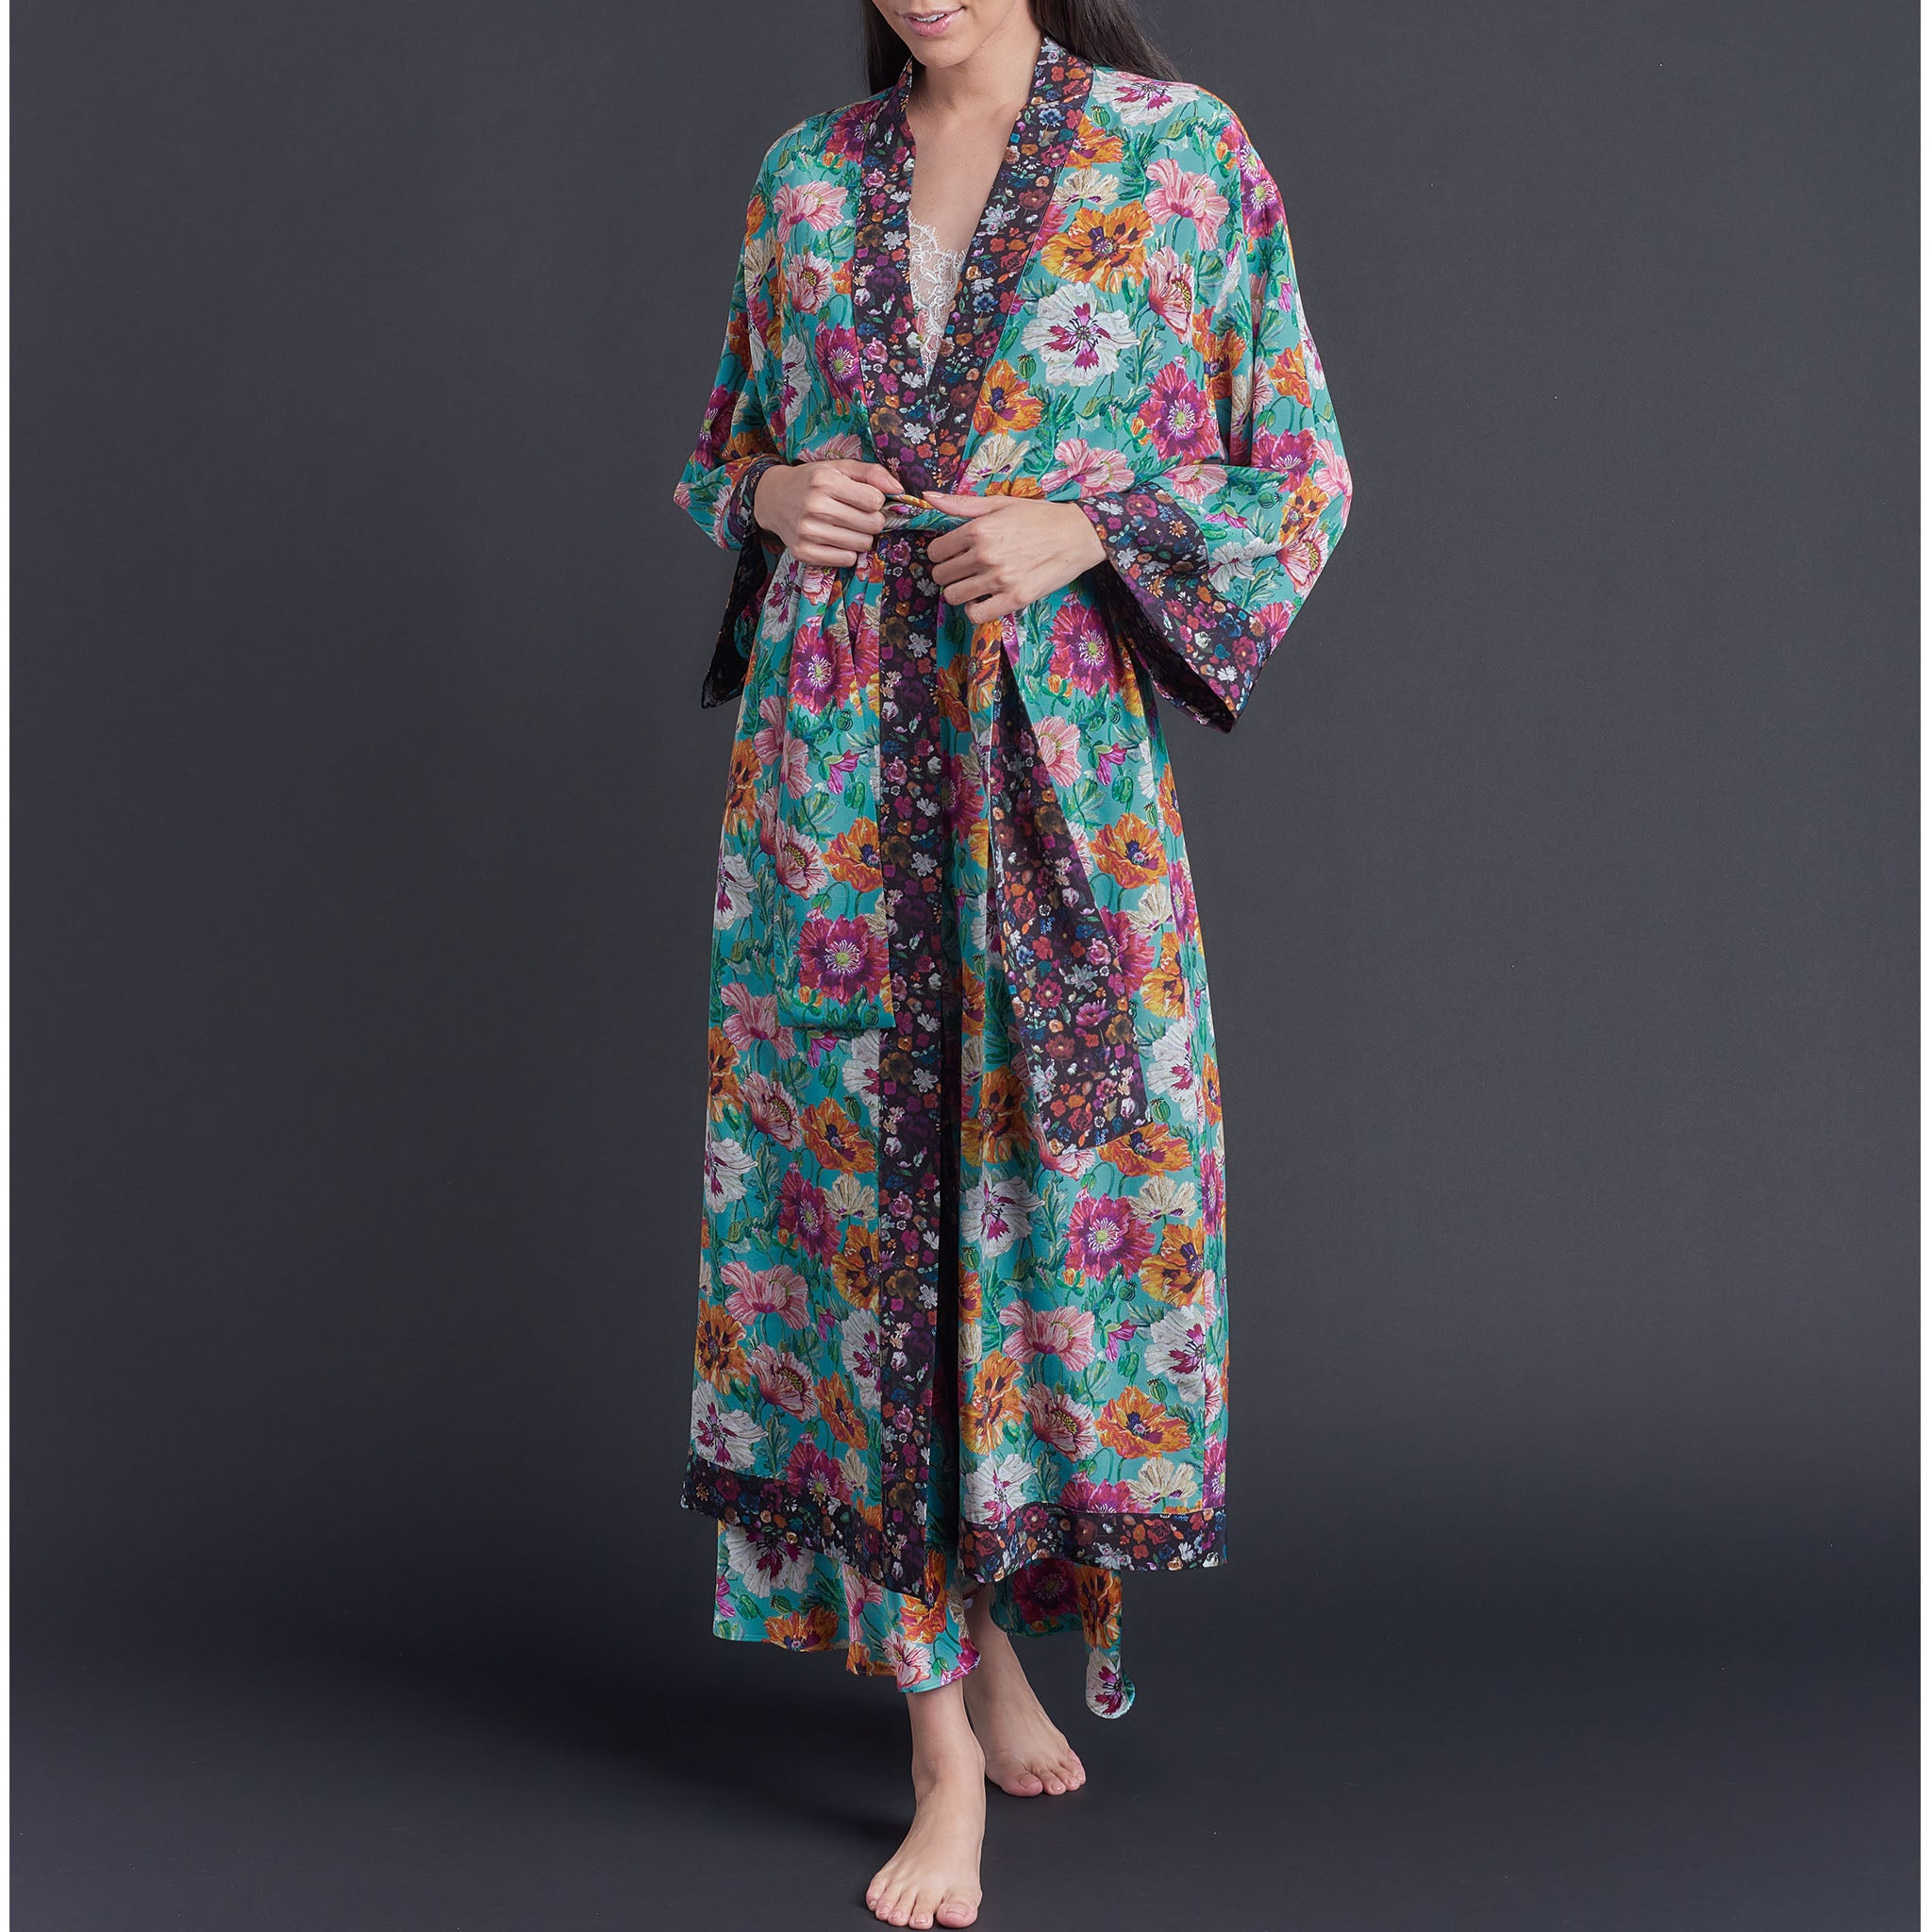 Asteria Kimono Robe in Poppy Liberty of London Print Silk Crepe De Chine